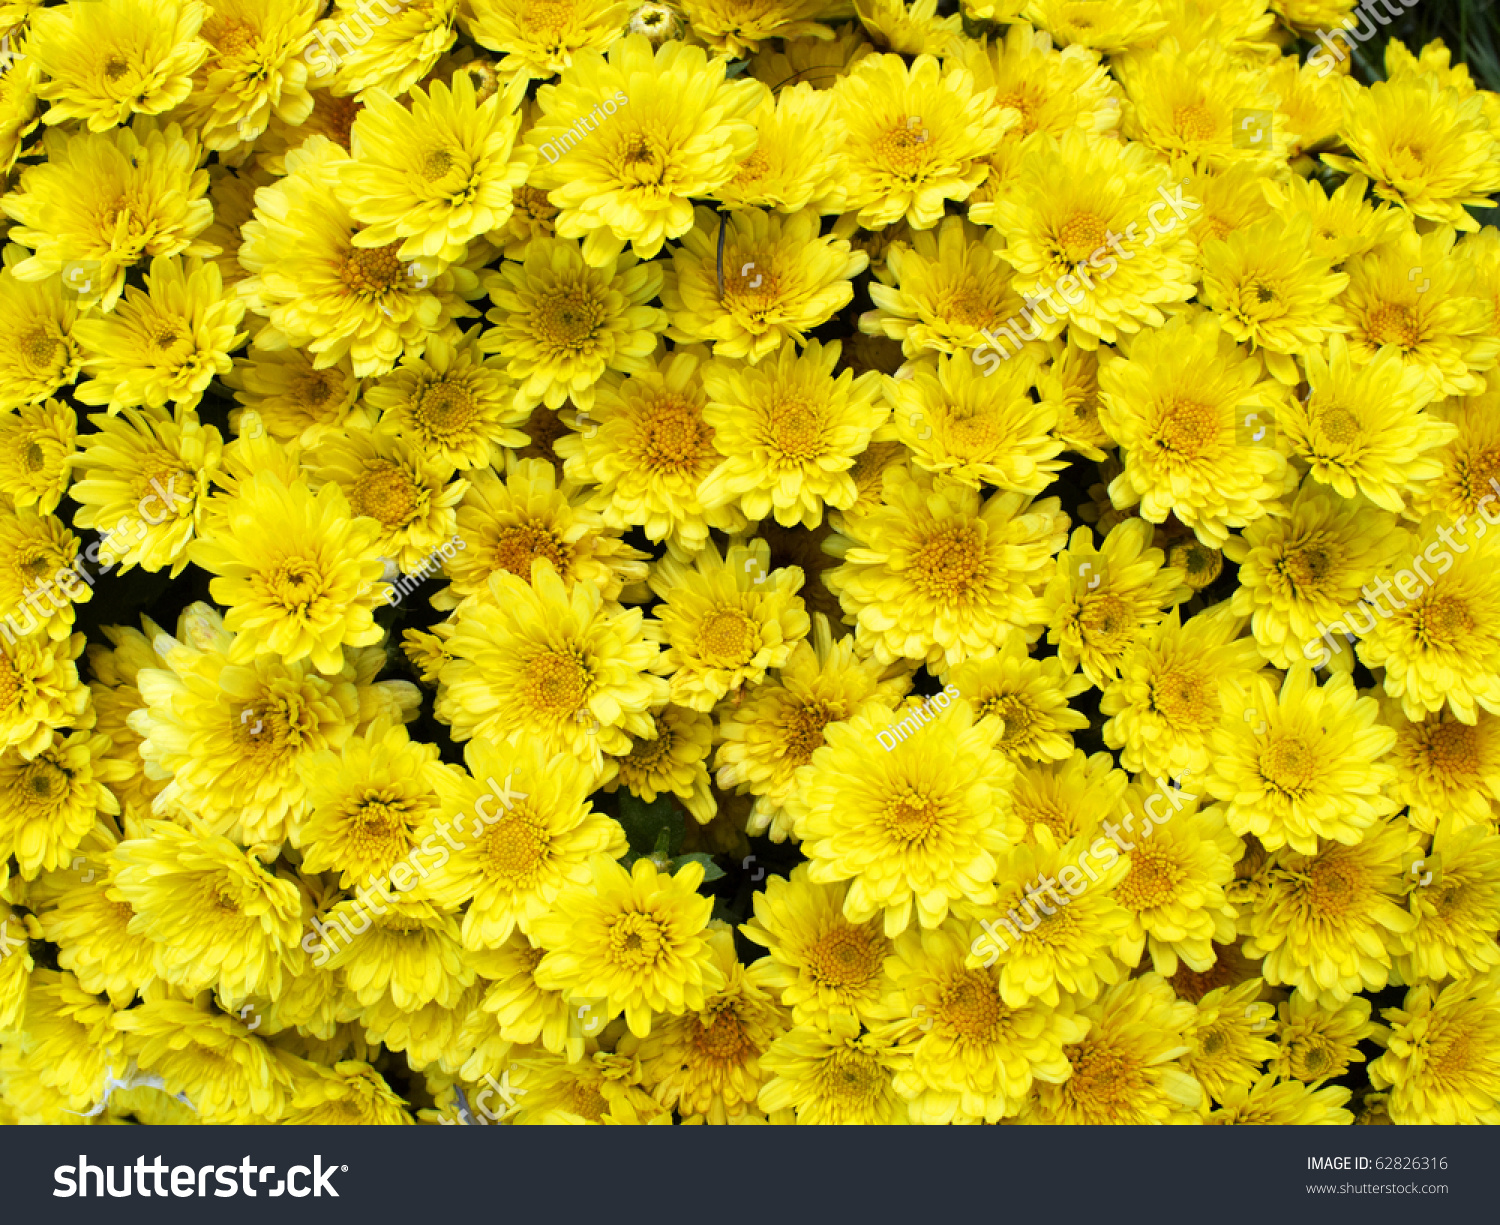 Yellow chrysanthemum flowers background stock photo edit now yellow chrysanthemum flowers background mightylinksfo